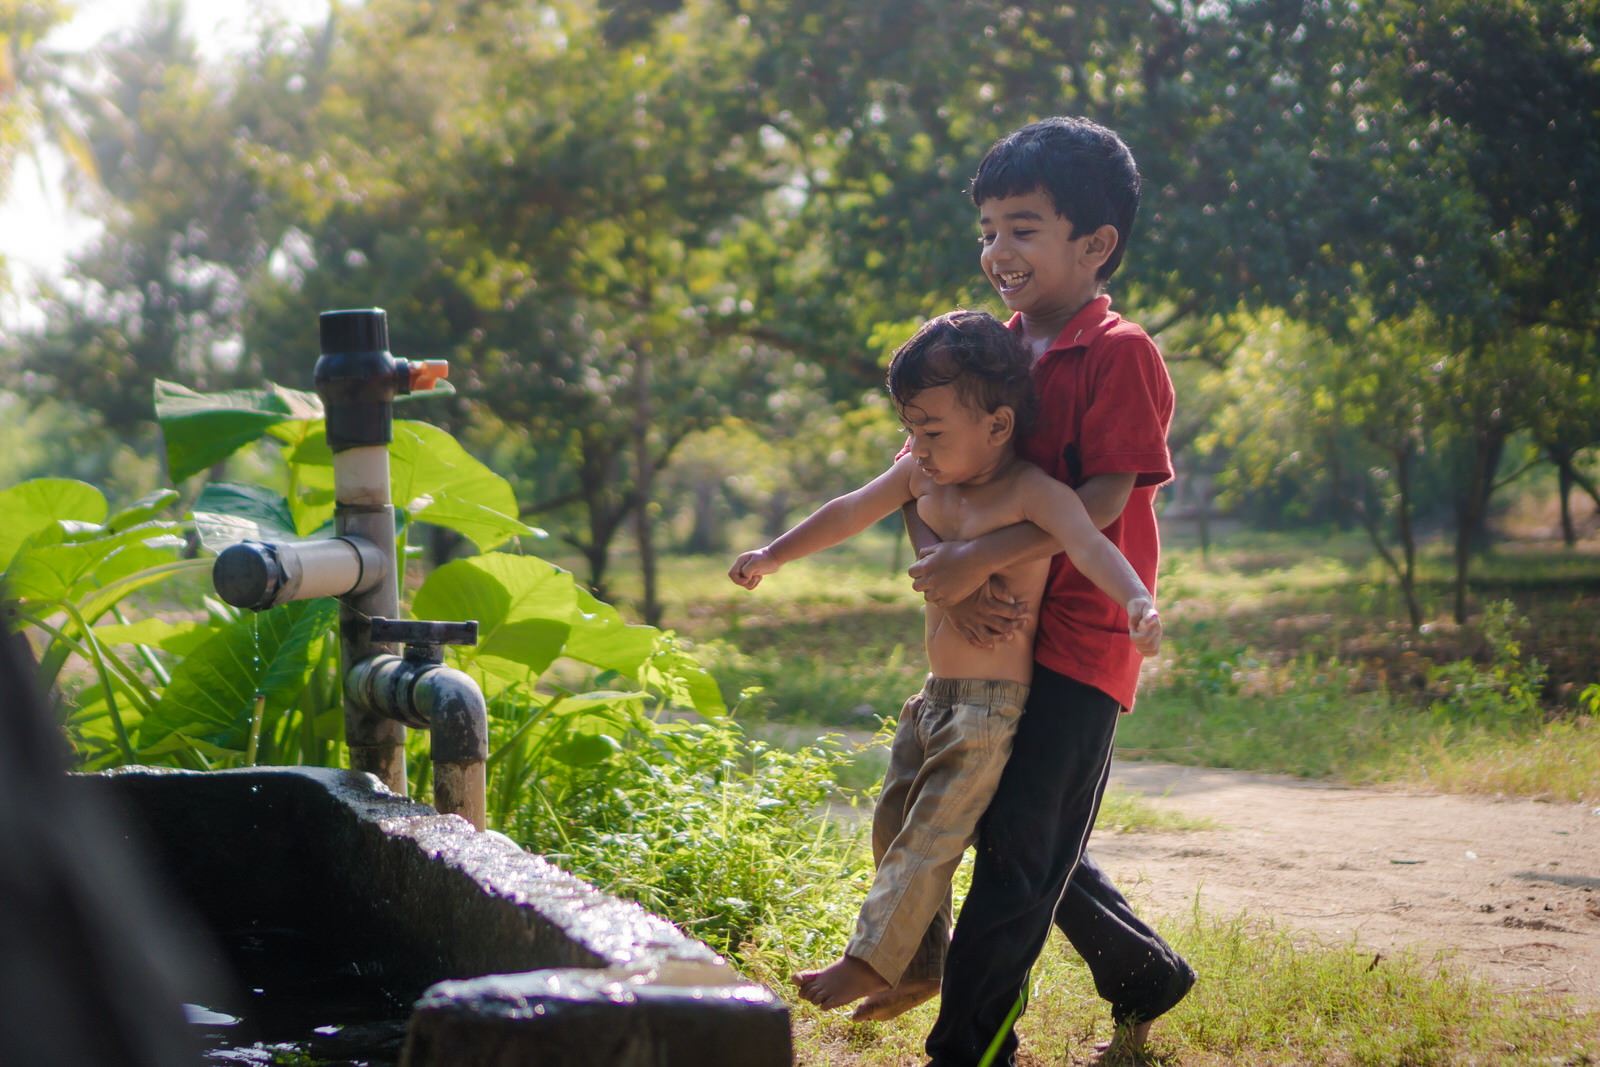 23122017-Boys-Playing-Water-Tank-327.jpg